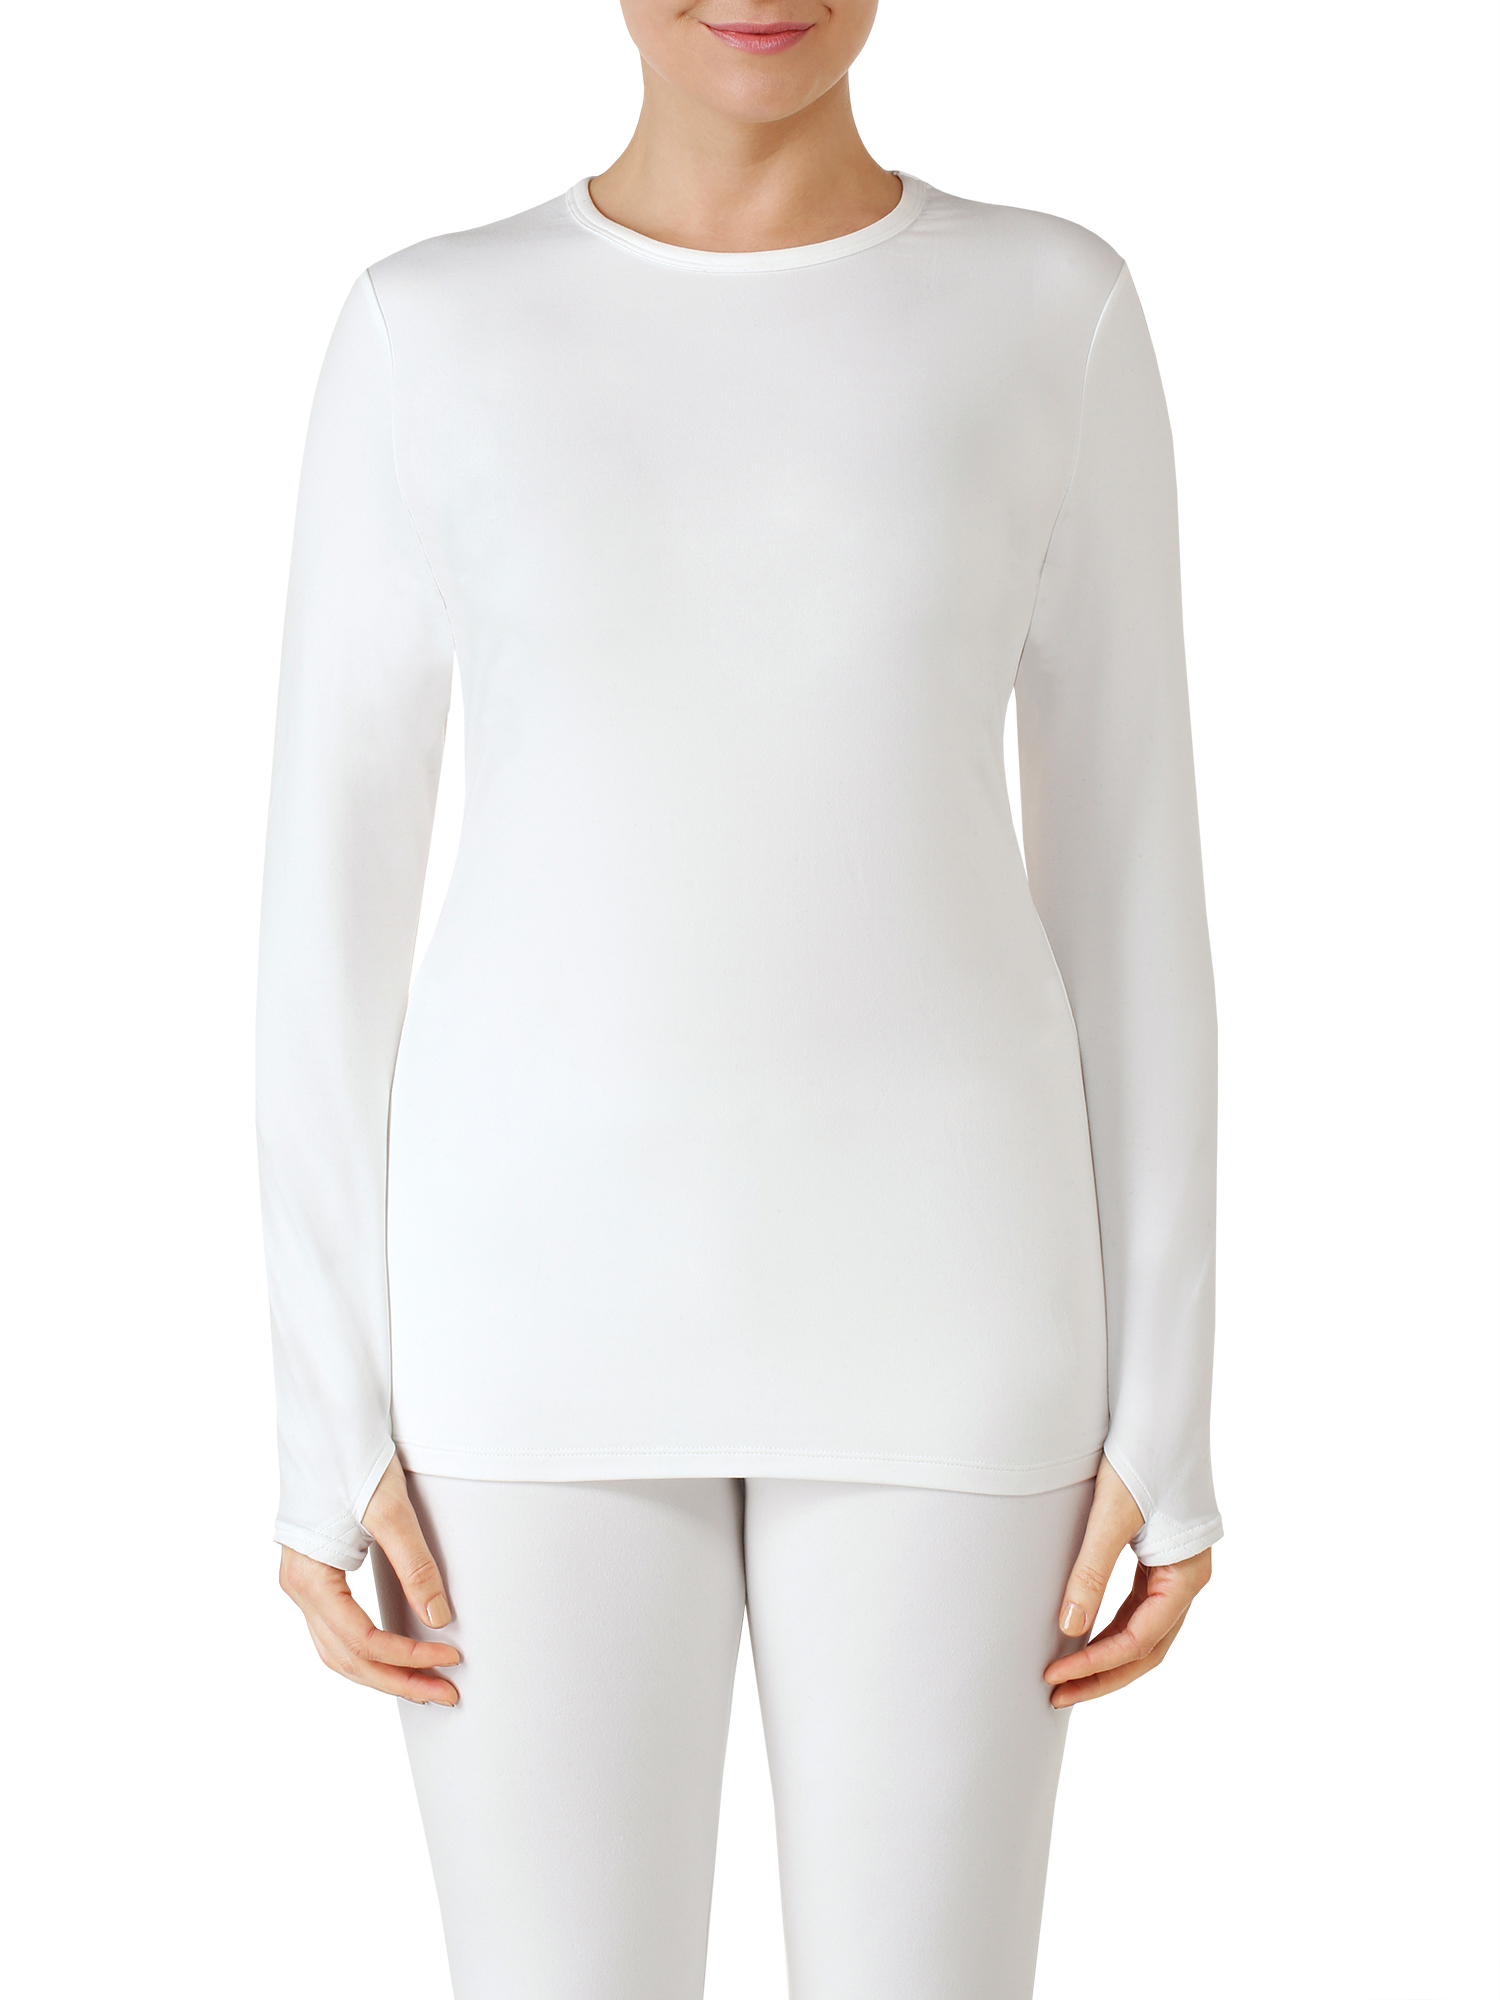 ClimateRight by Cuddl Duds Women's Sueded Warmth Warm Long Underwear Top by